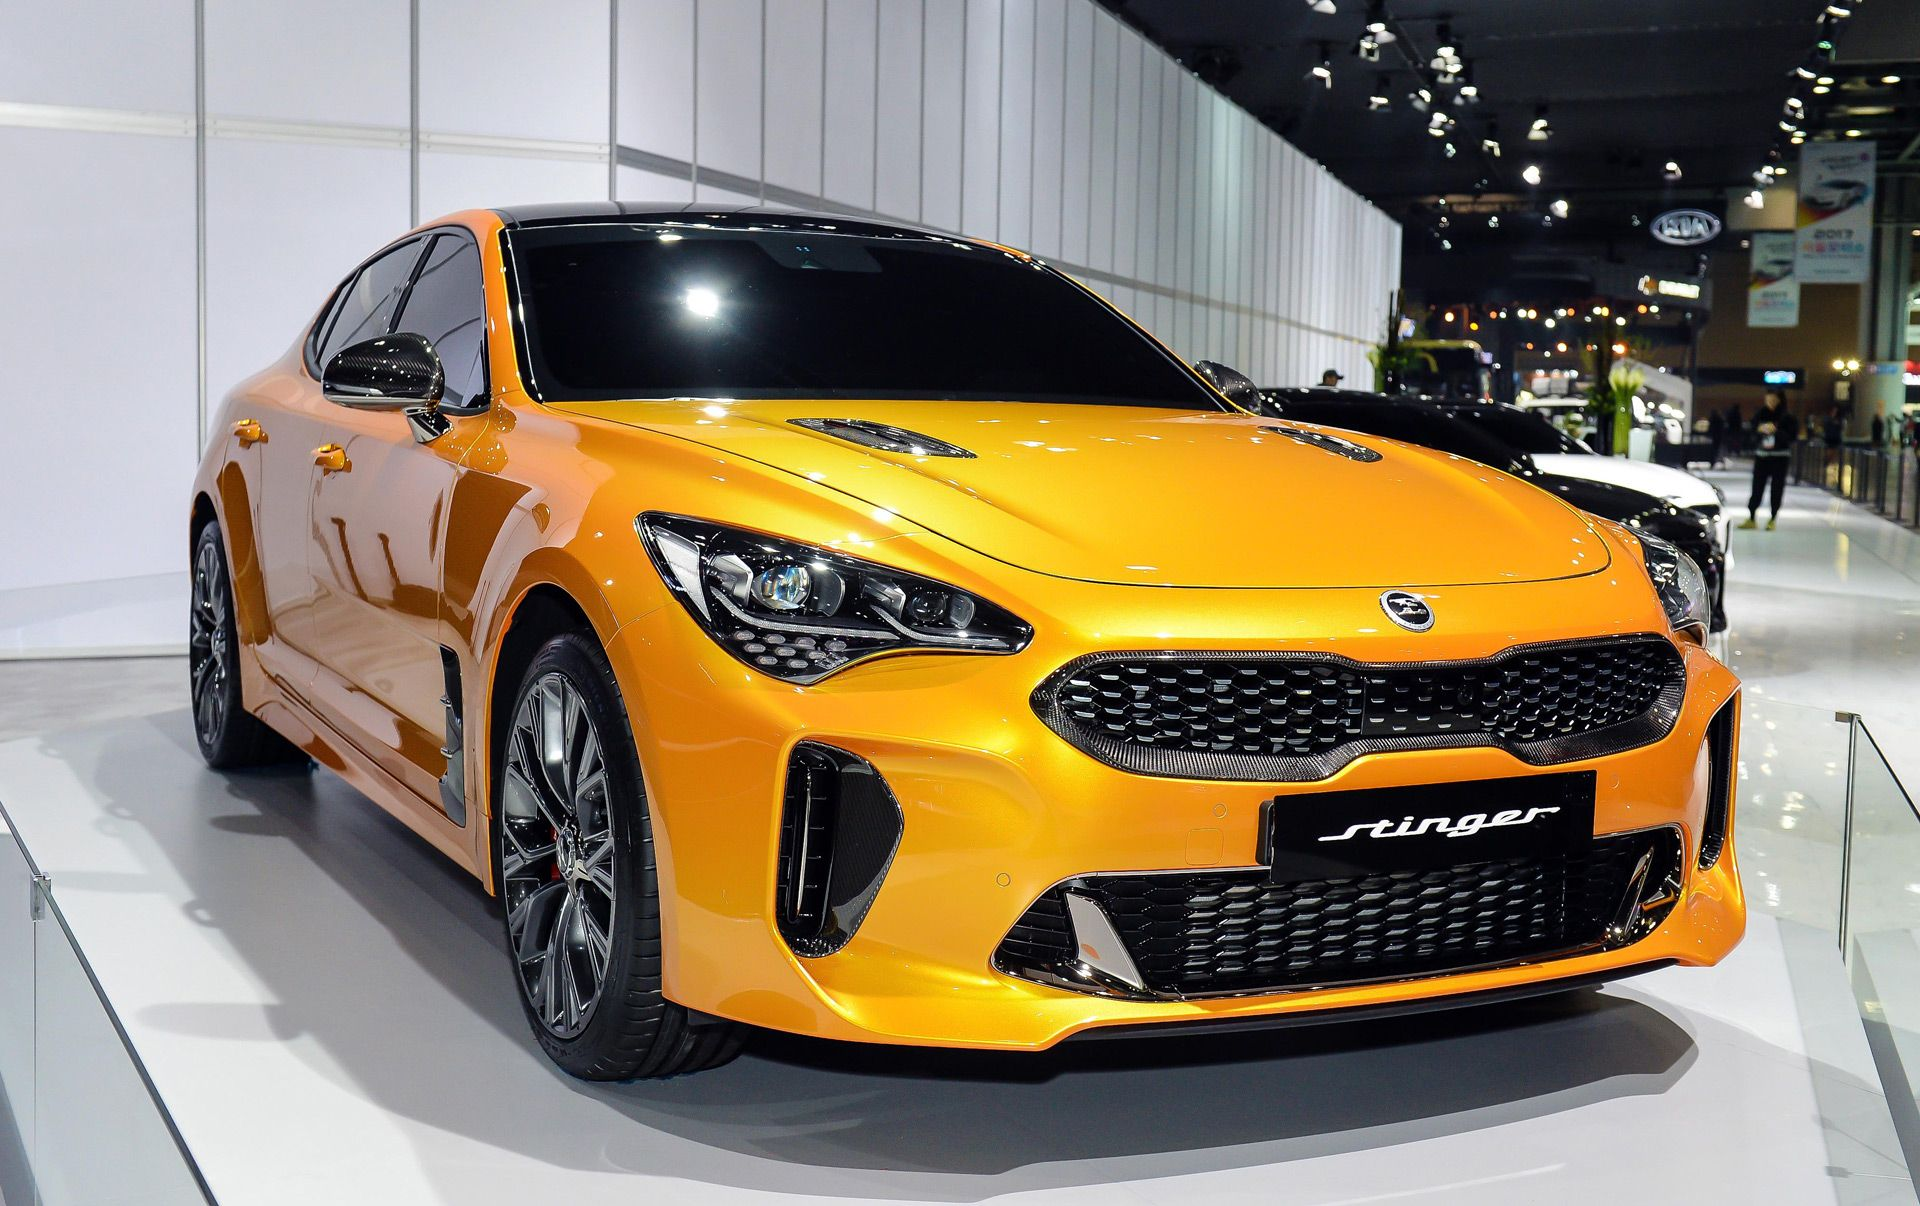 Kia Stinger 0 60 Time Under 4.9 Seconds